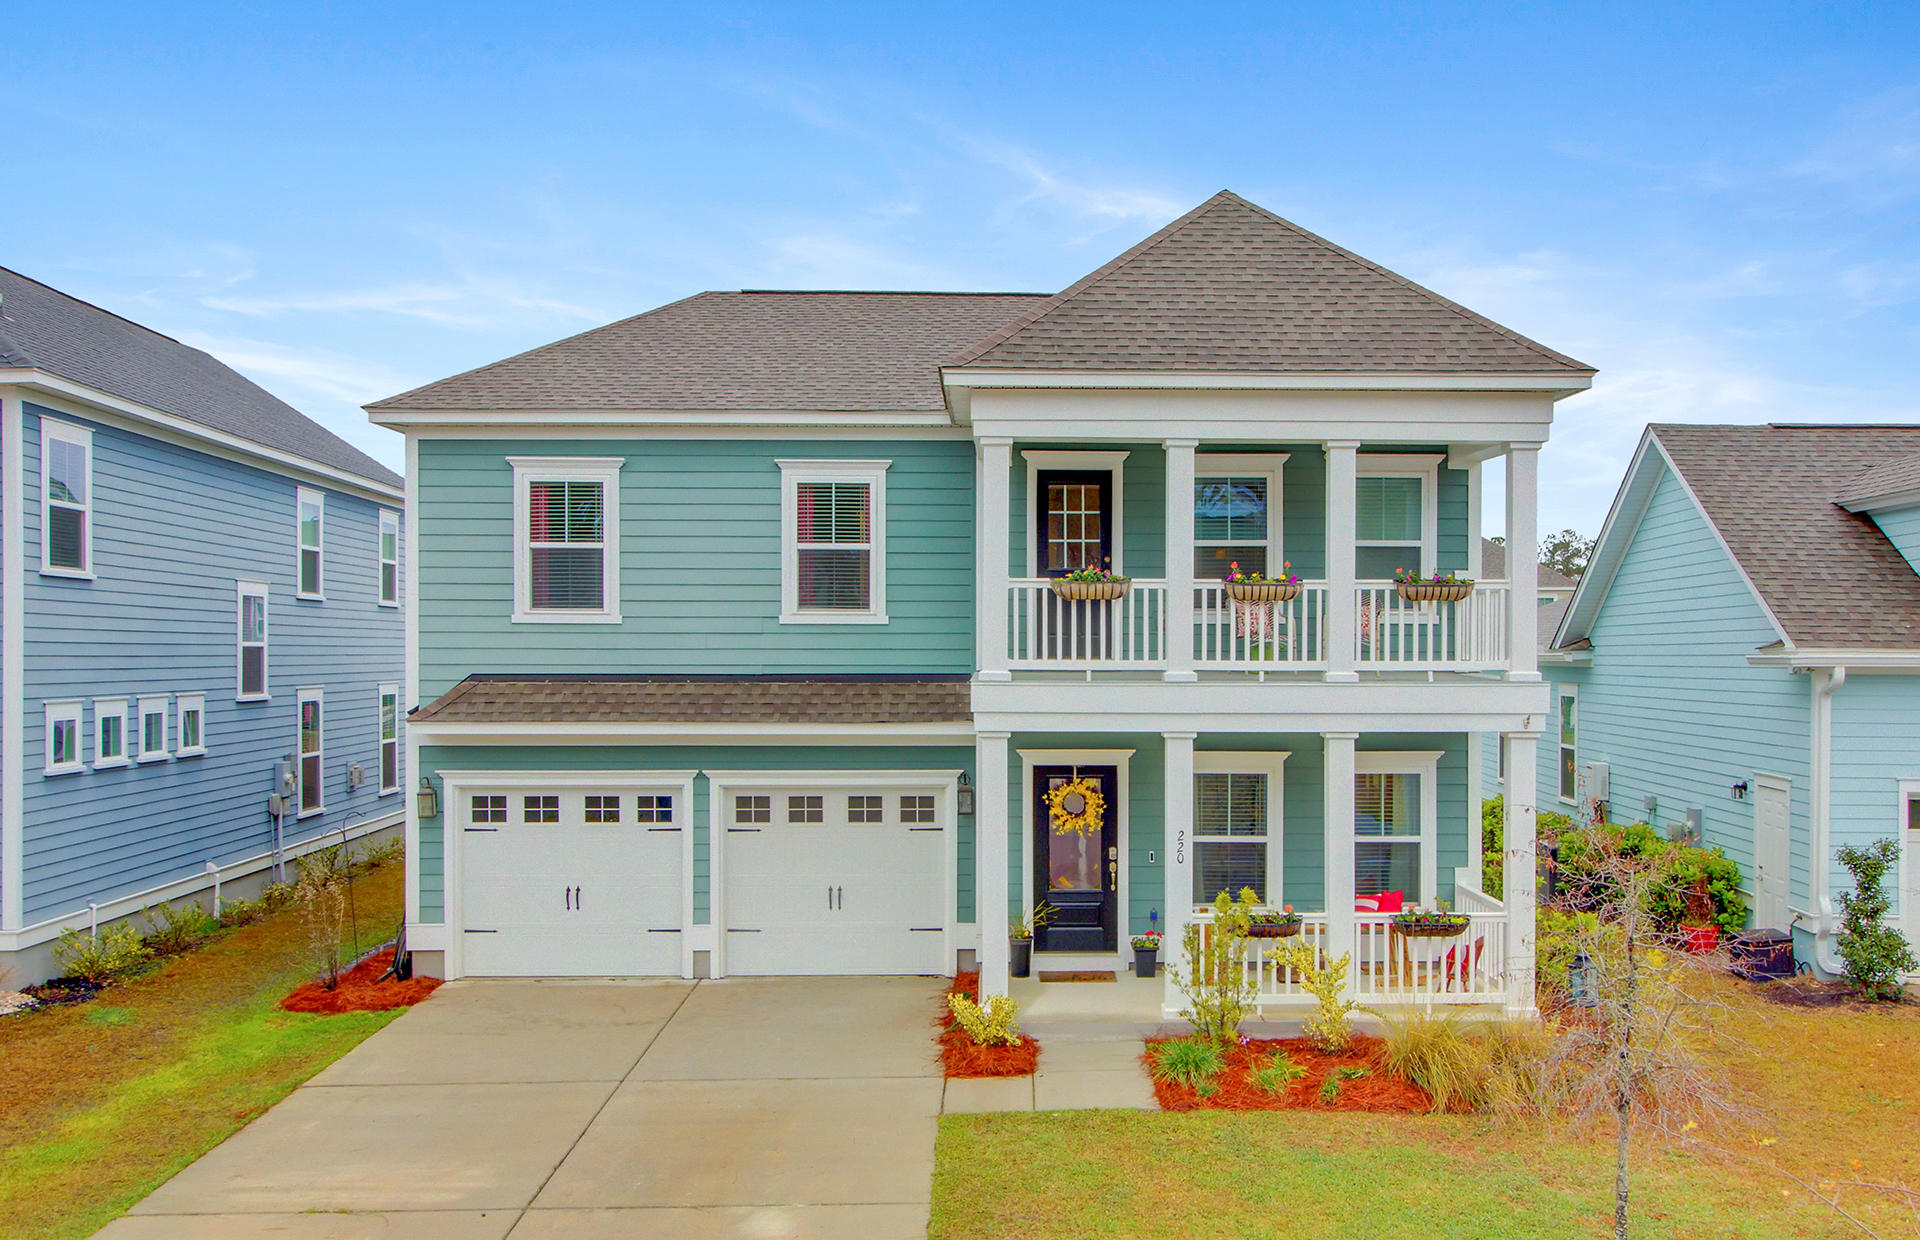 220 Calm Water Way Summerville, Sc 29486